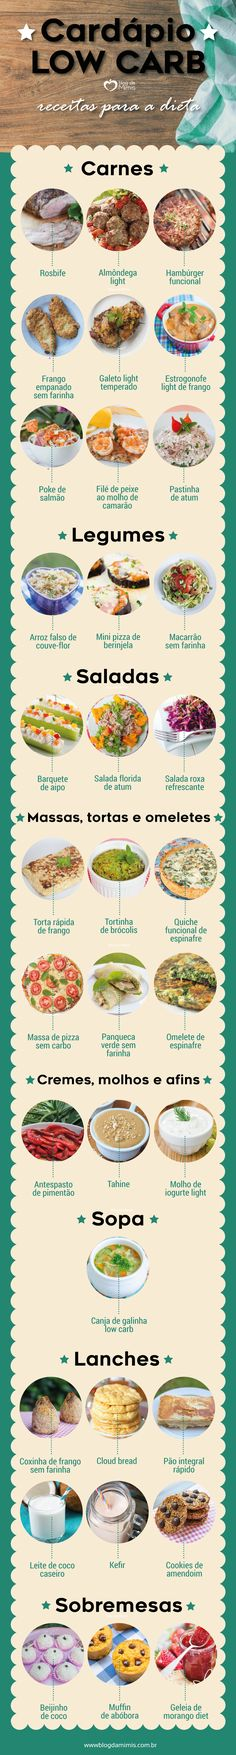 Dieta Hcg, Menu Dieta, Low Carb Menu, Low Carb Diet, Hcg Diet Recipes, Low Carb Recipes, Free Recipes, Light Recipes, Diet And Nutrition